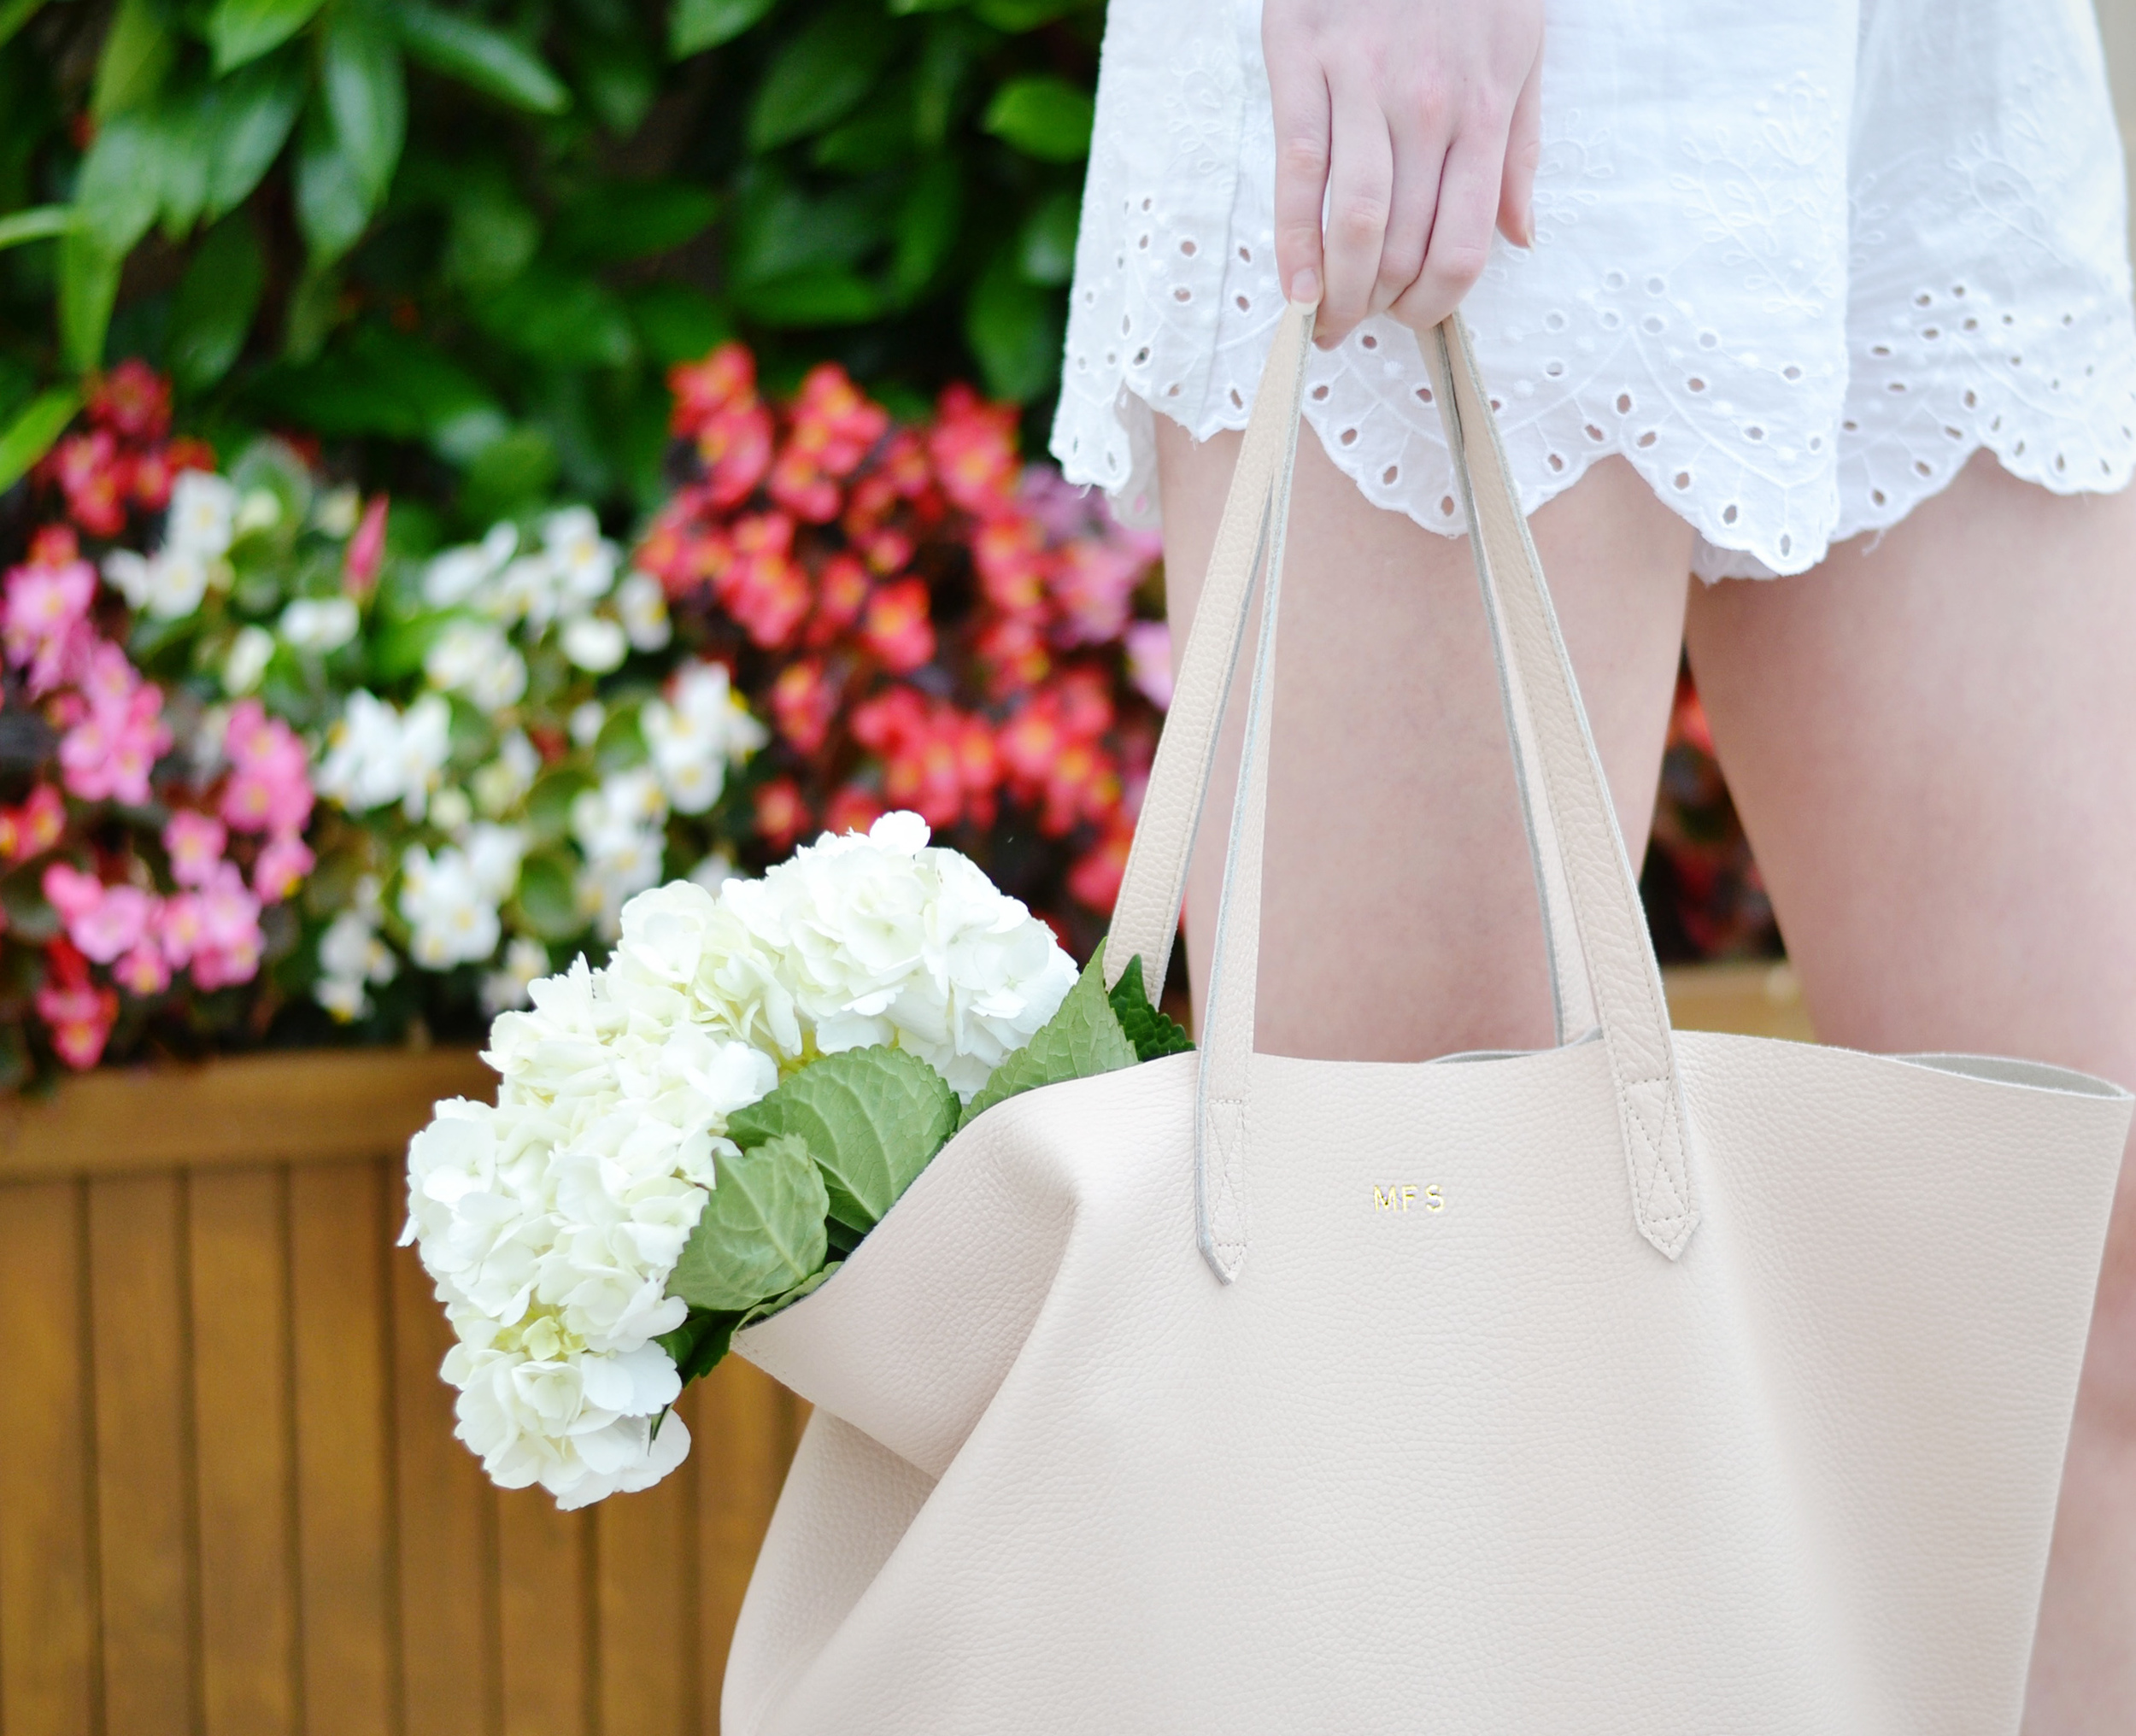 Cuyana Tote Bag (via Chic Now)